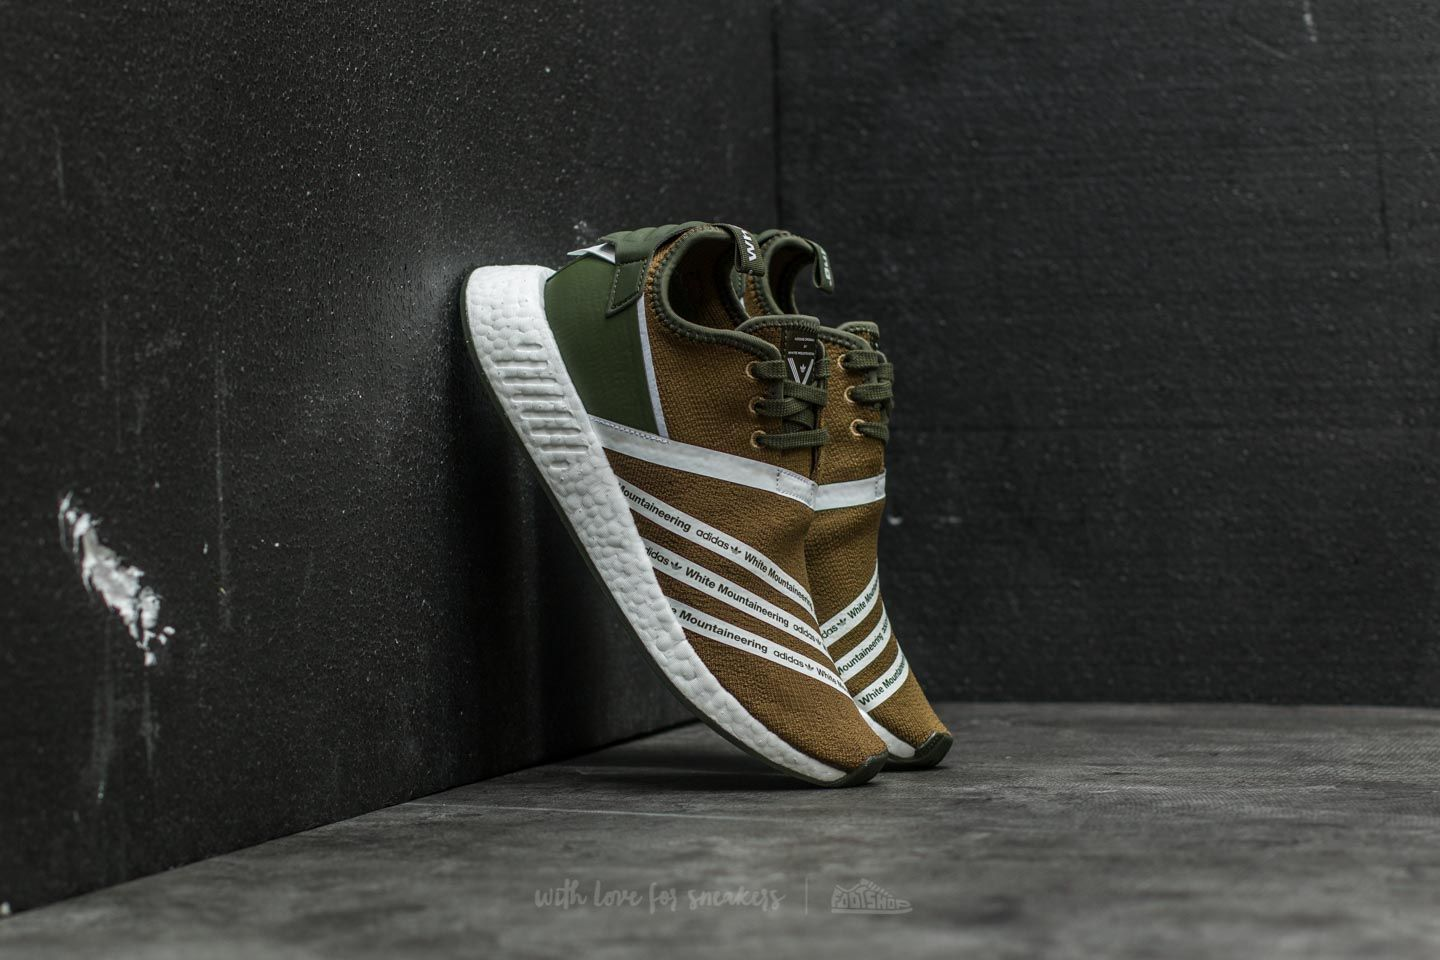 df8887886 adidas x White Mountaineering NMD R2 Primeknit. Trace Olive  Ftw White